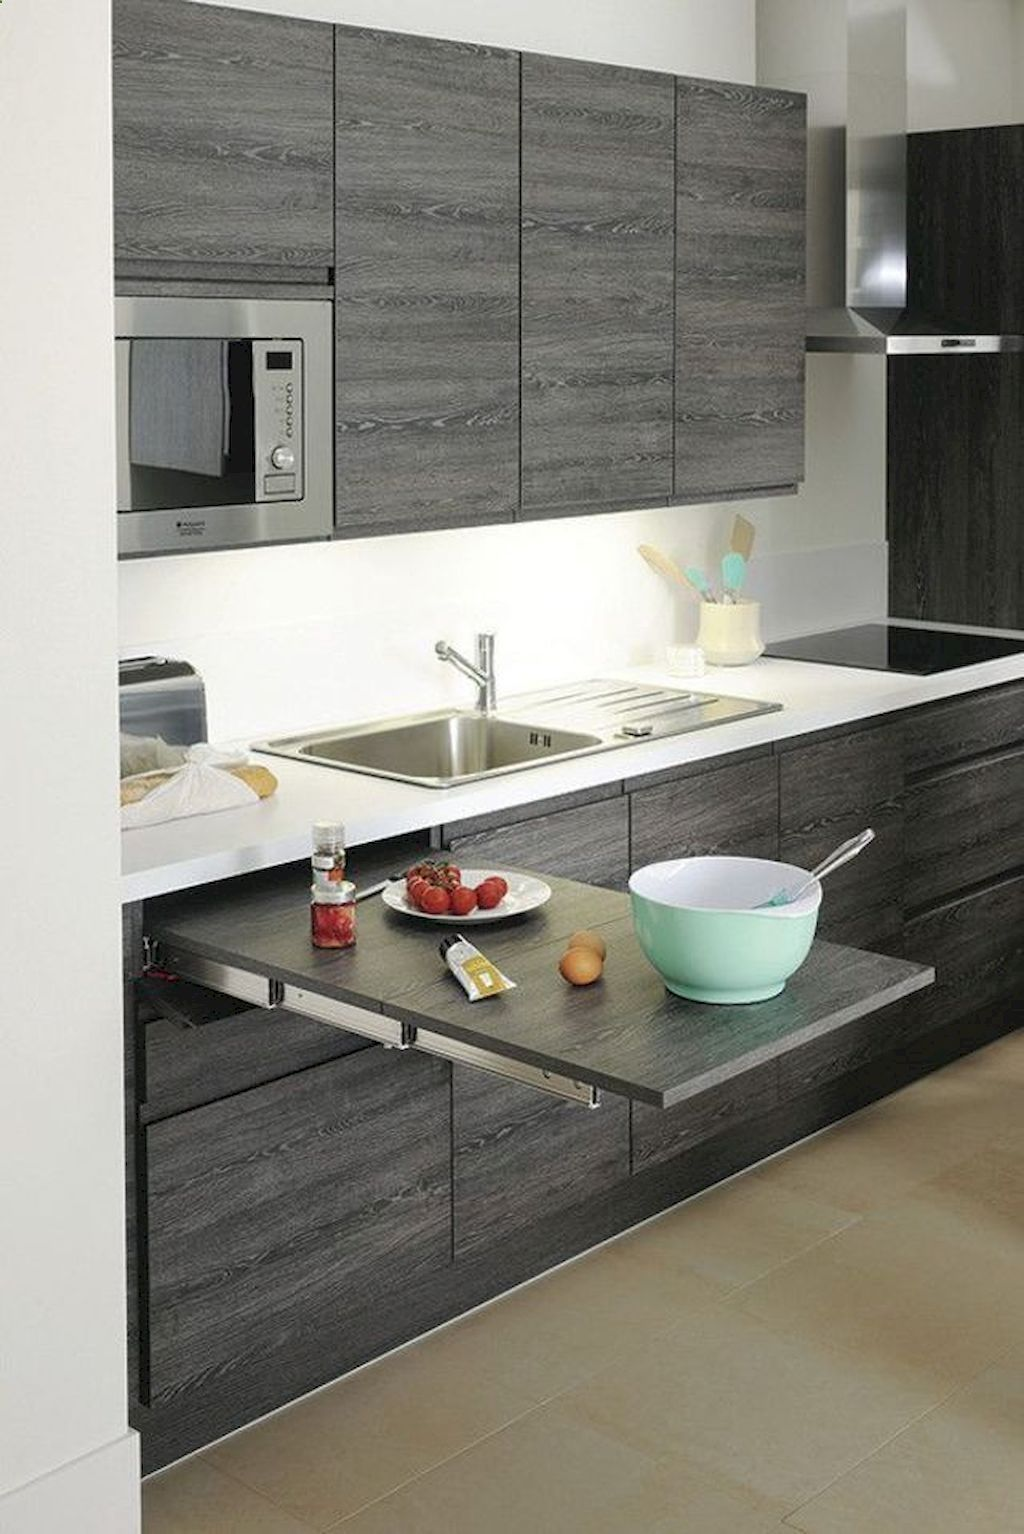 Adorable 30 Small Kitchen Remodel Ideas   16.000 woodworking plans ...